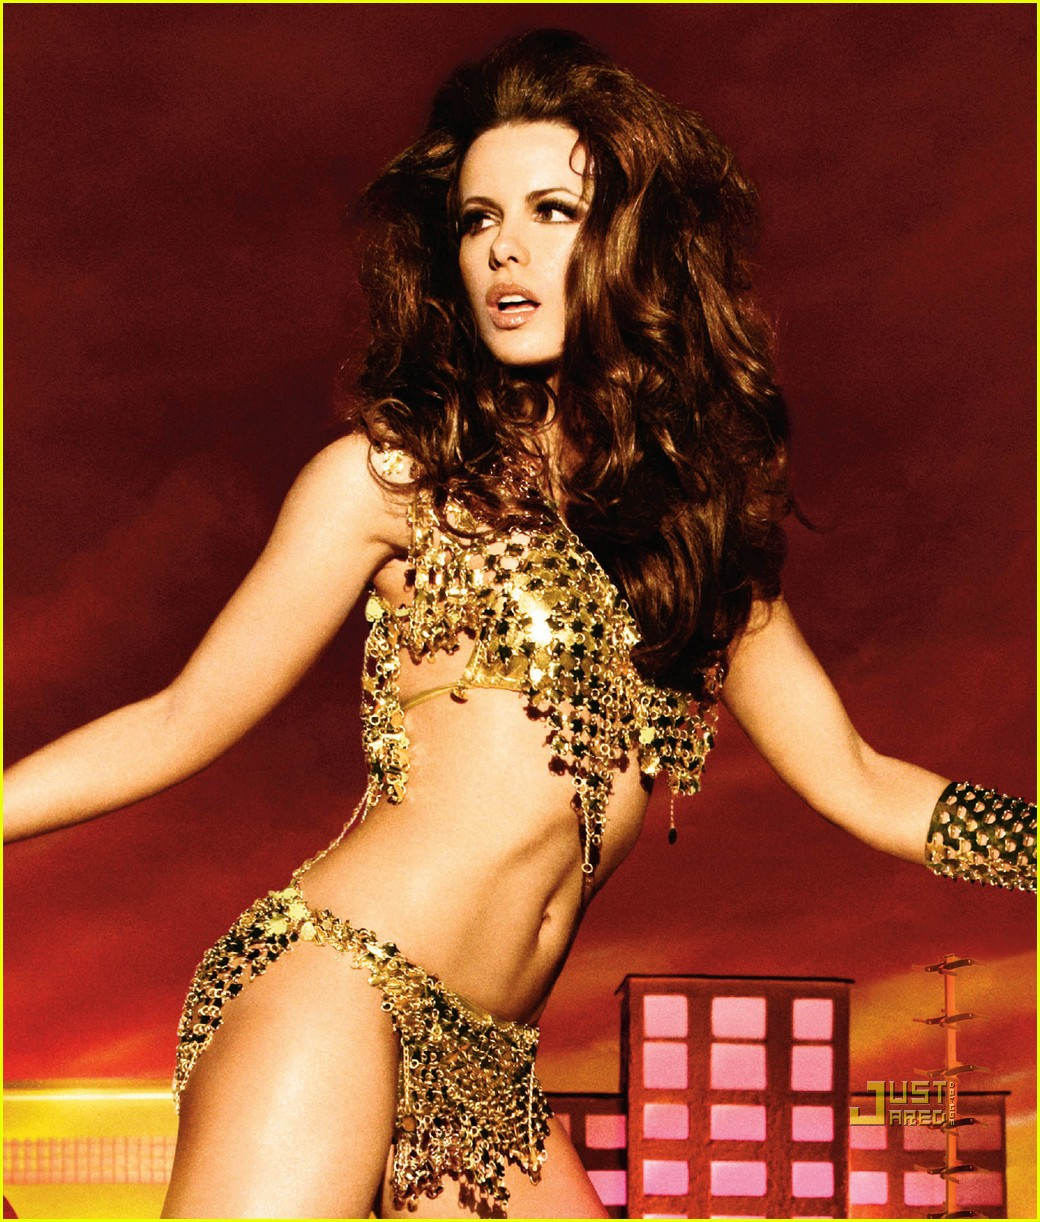 The girl kate beckinsale hottest pics girl